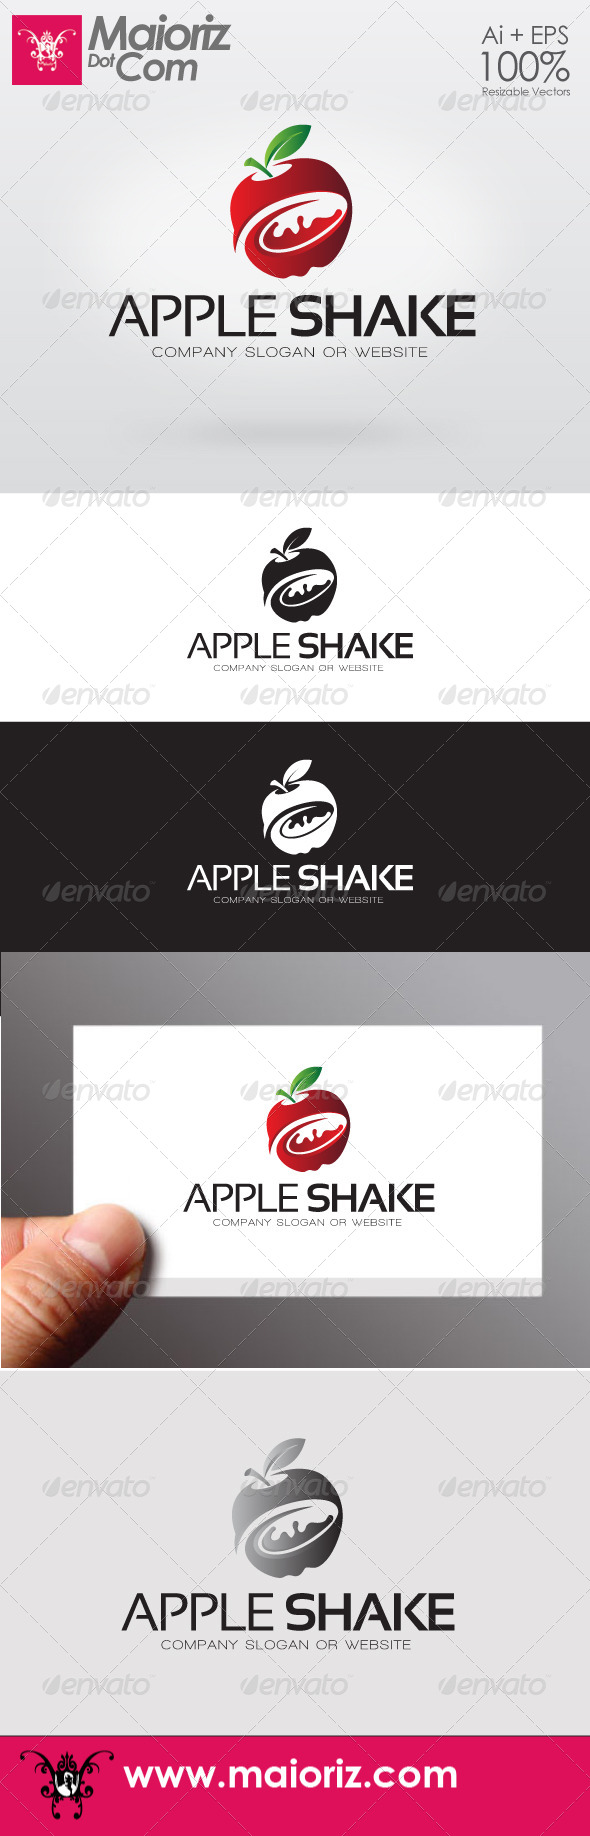 Apple Shake Logo - Food Logo Templates